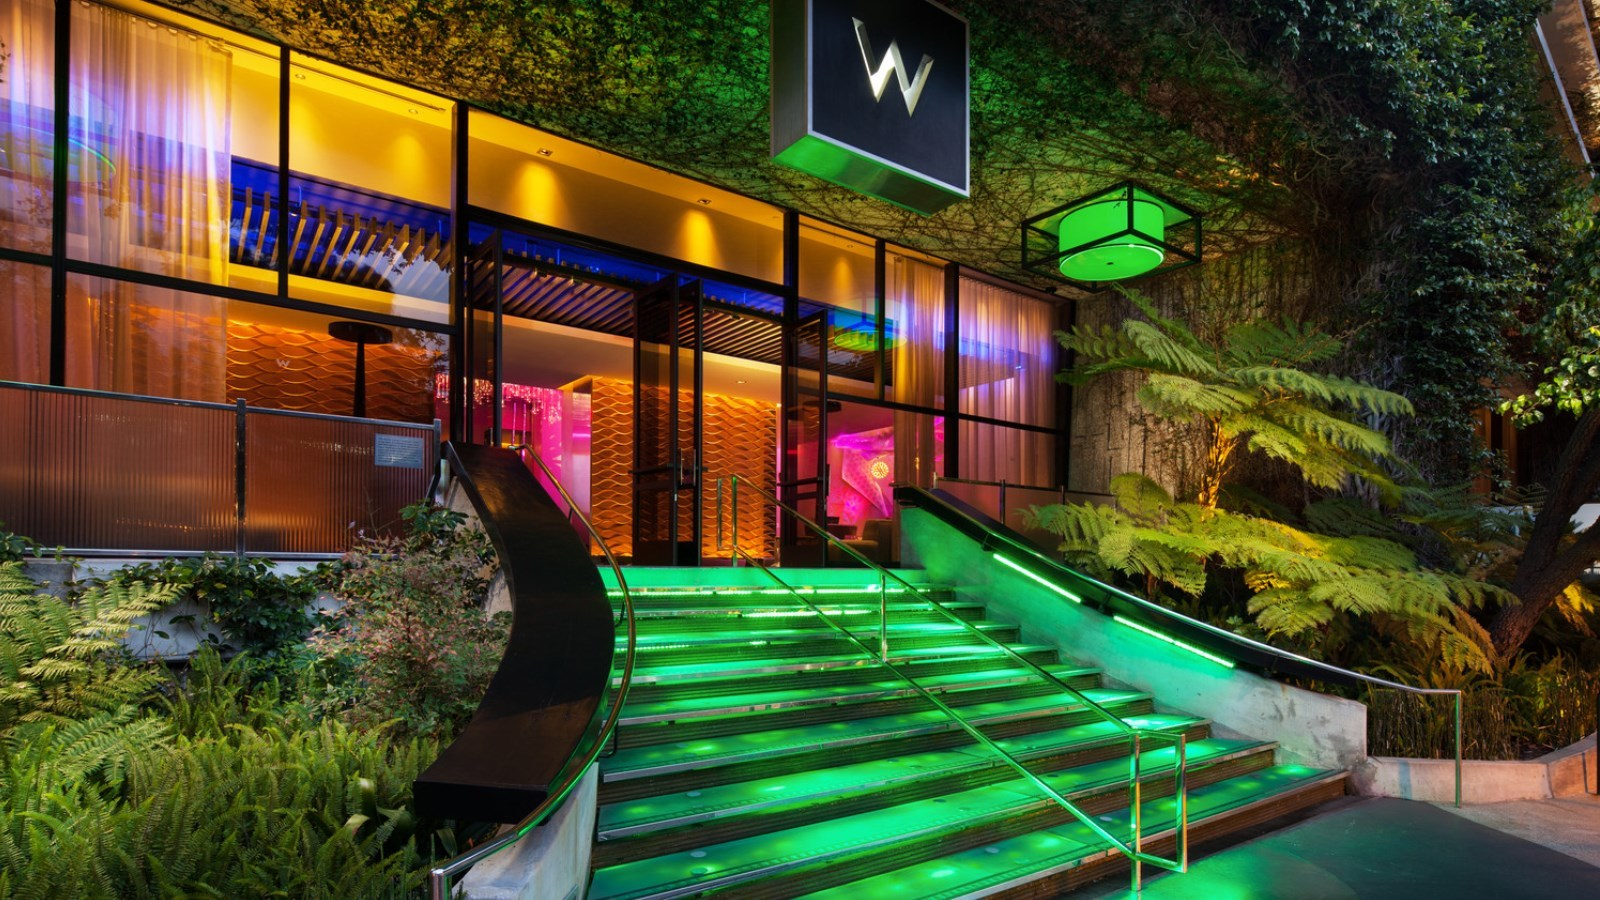 STK's the Hideout at W Los Angeles